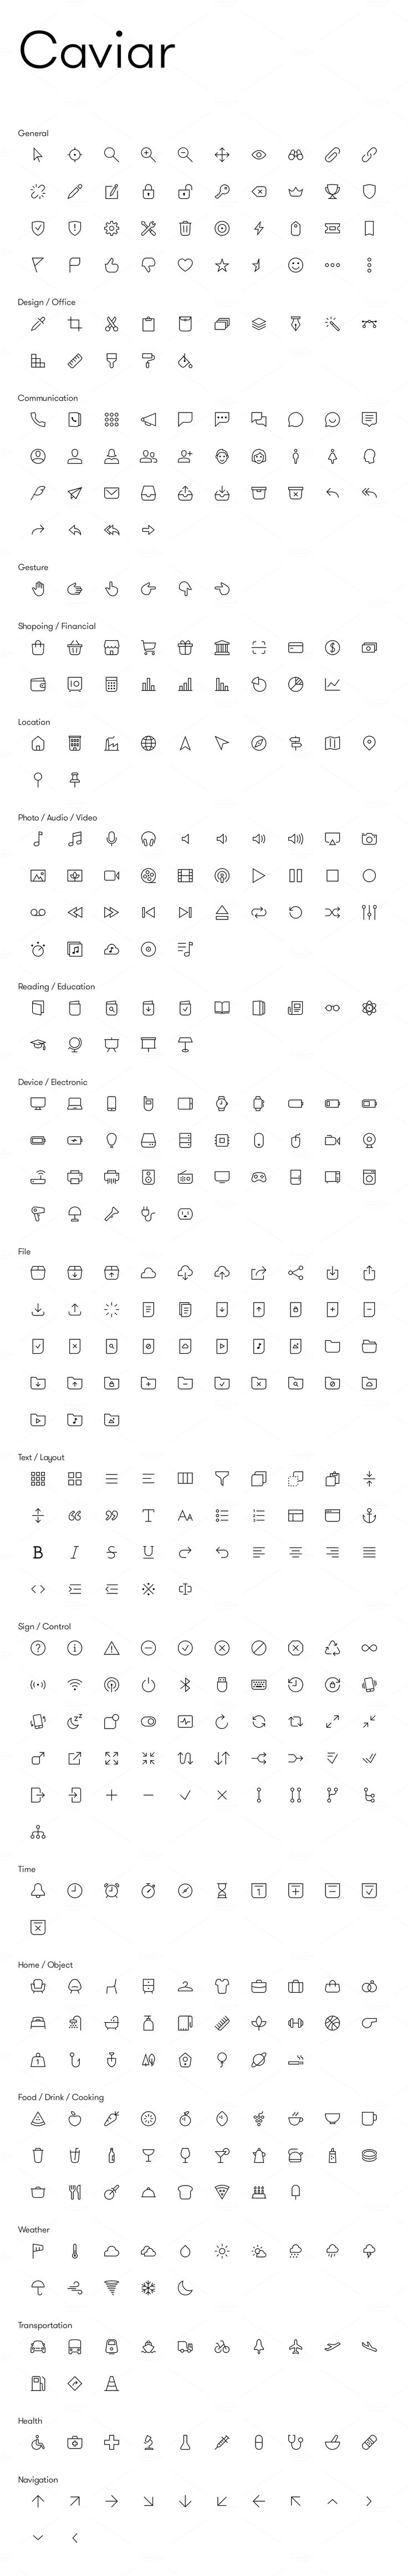 Fantastic line icon set! Not free, but lots of variety and really high quality designs. It would be worth the price for certain projects!